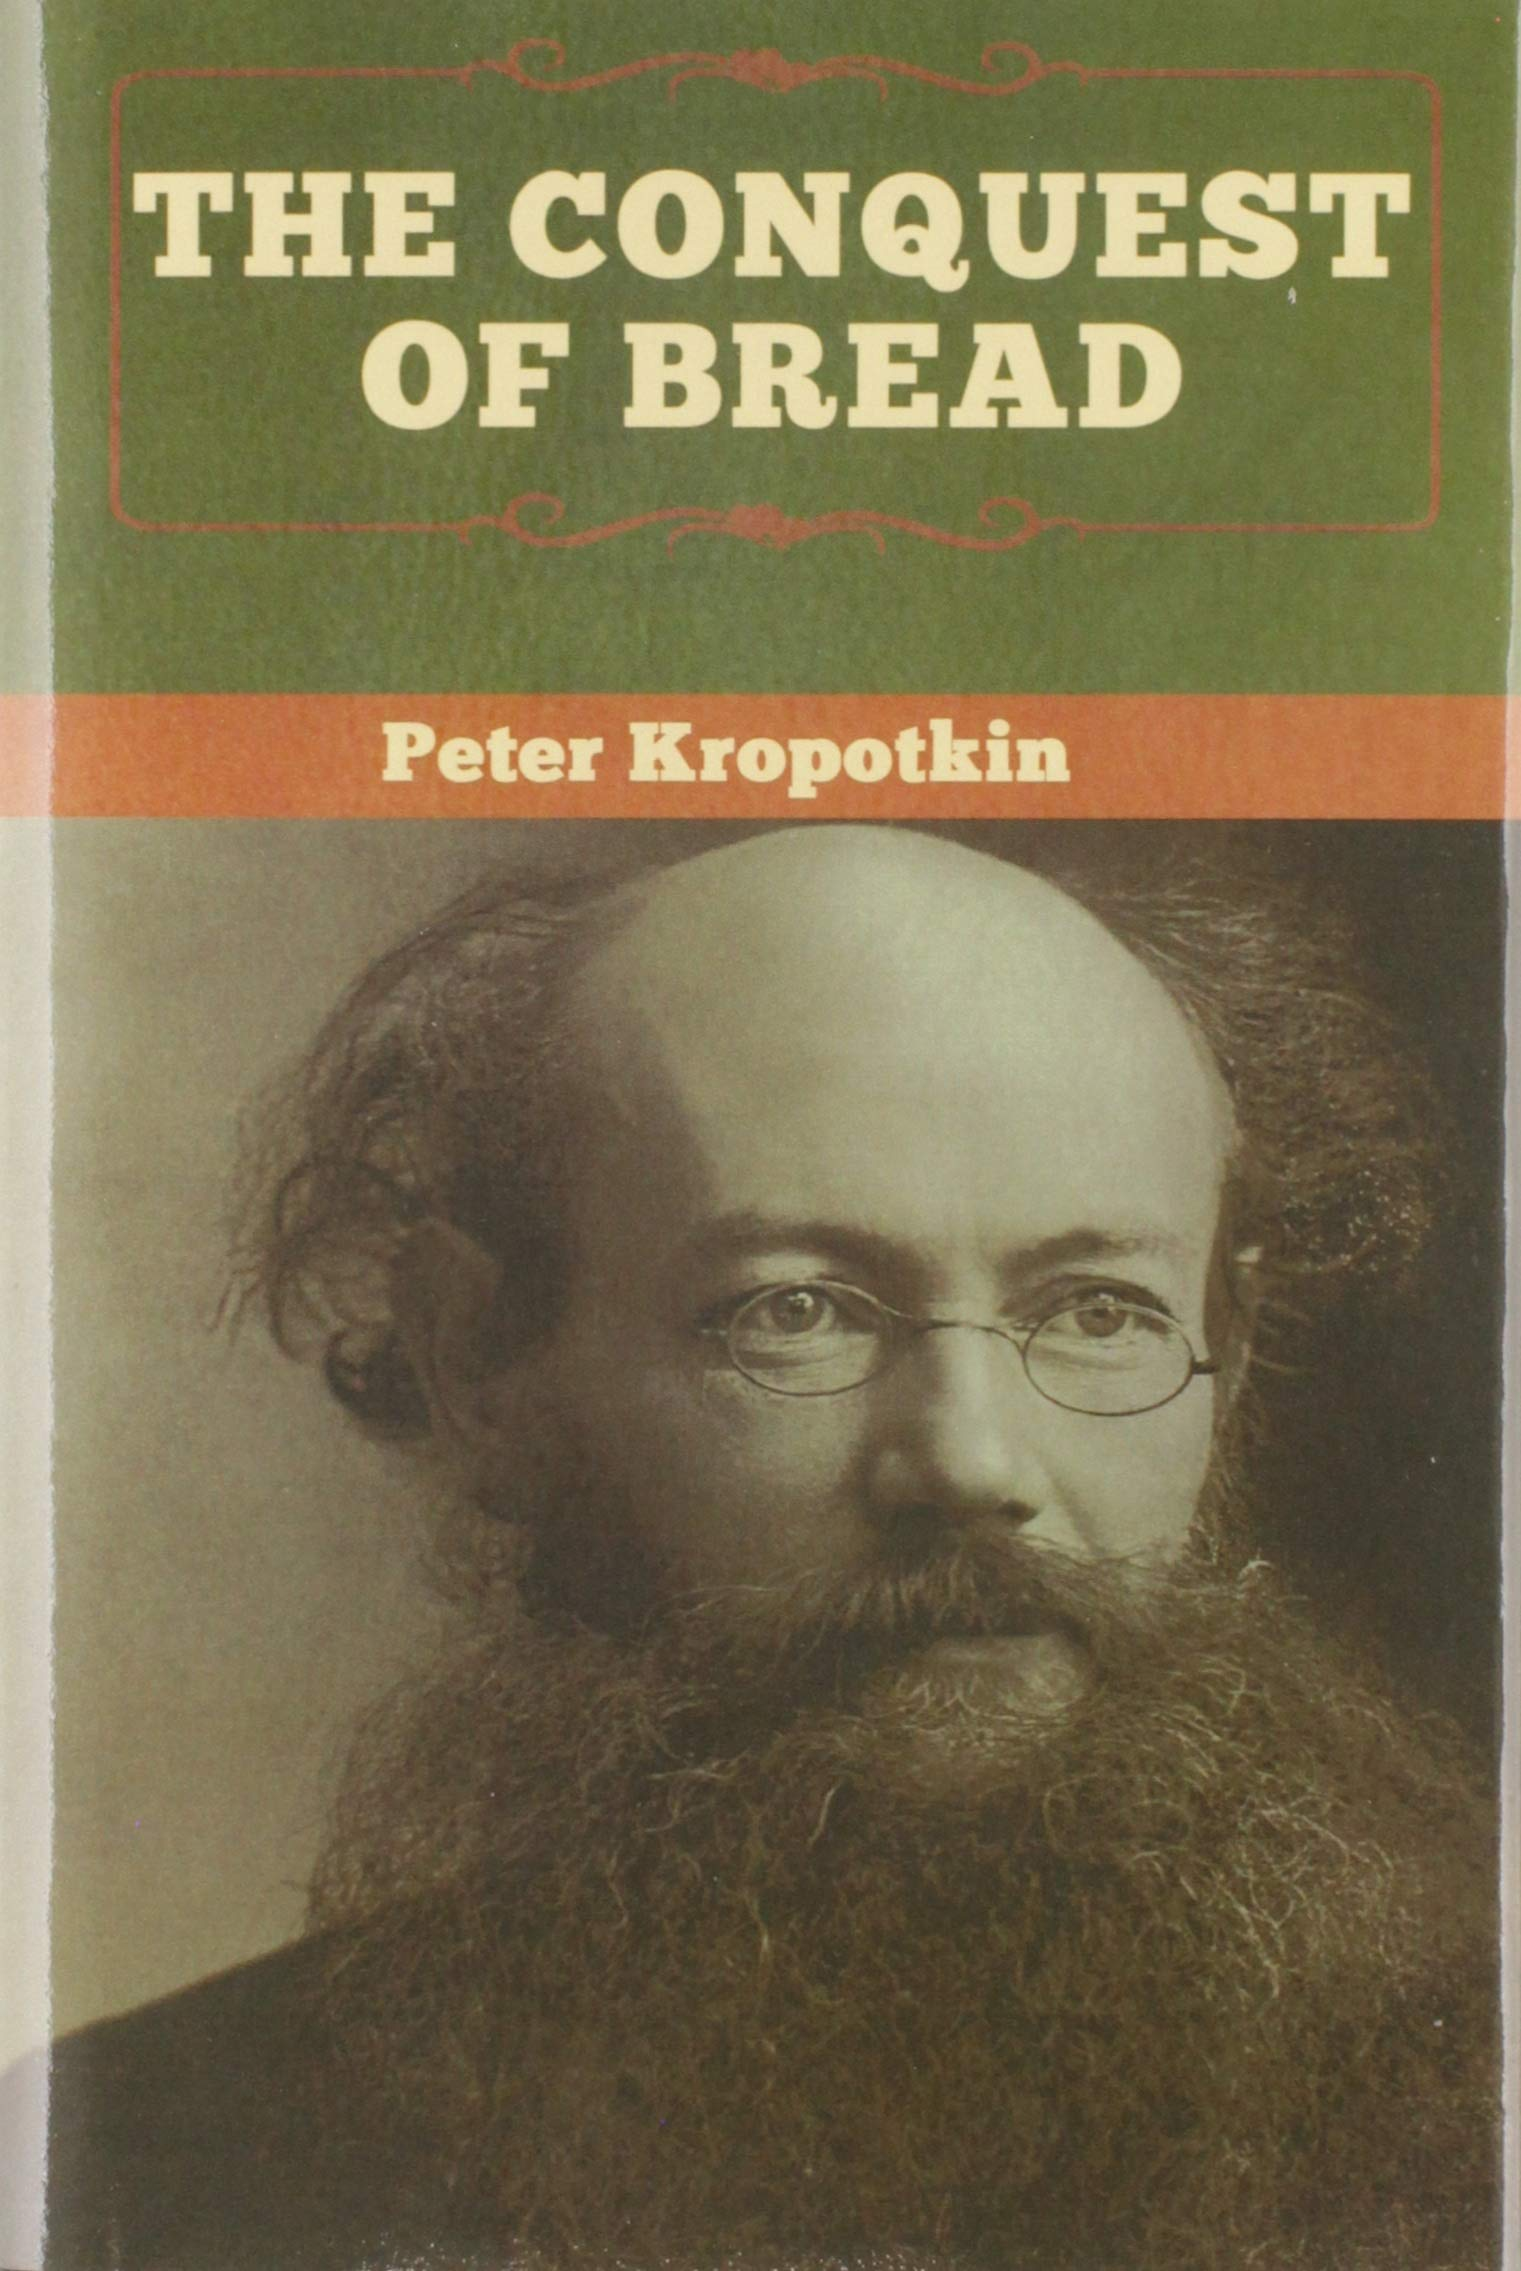 Download The Conquest Of Bread By Pyotr Kropotkin